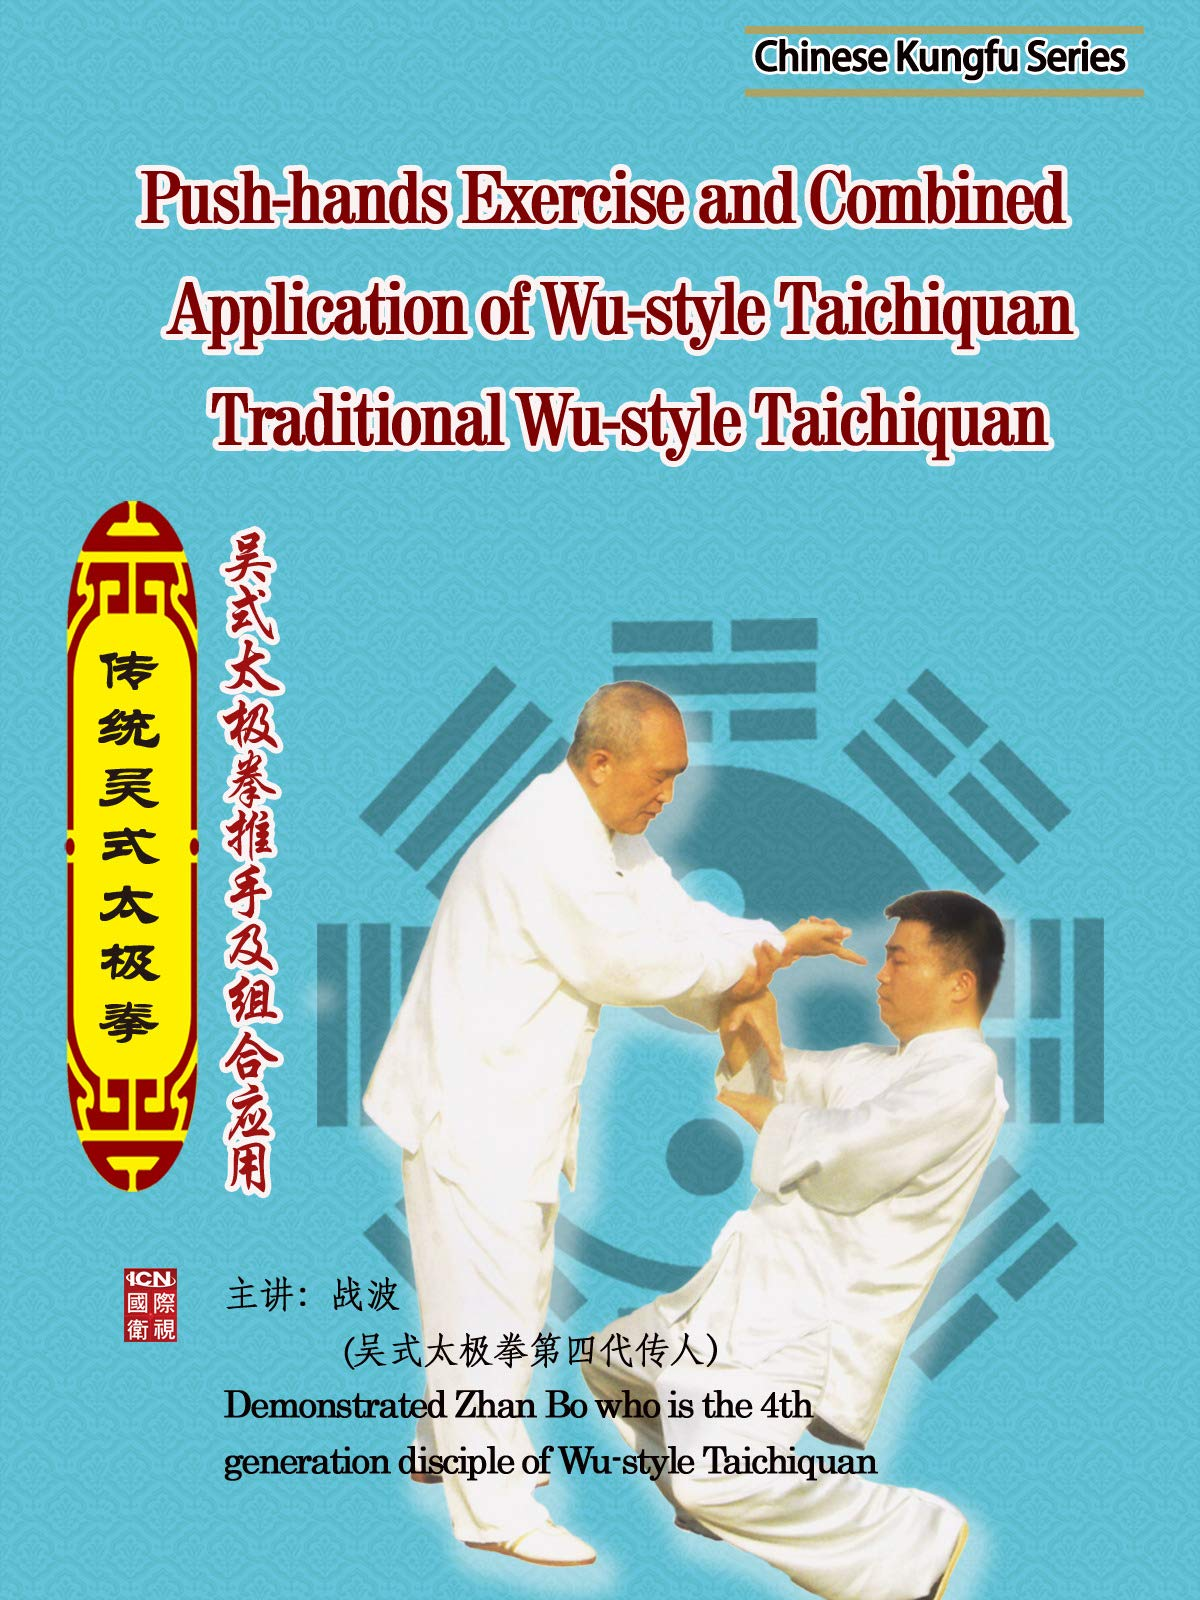 Push-hands Exercise and Combined Application of Wu-style Taichiquan Traditional Wu-style Taichiquan (Demonstrated Zhan Bo)